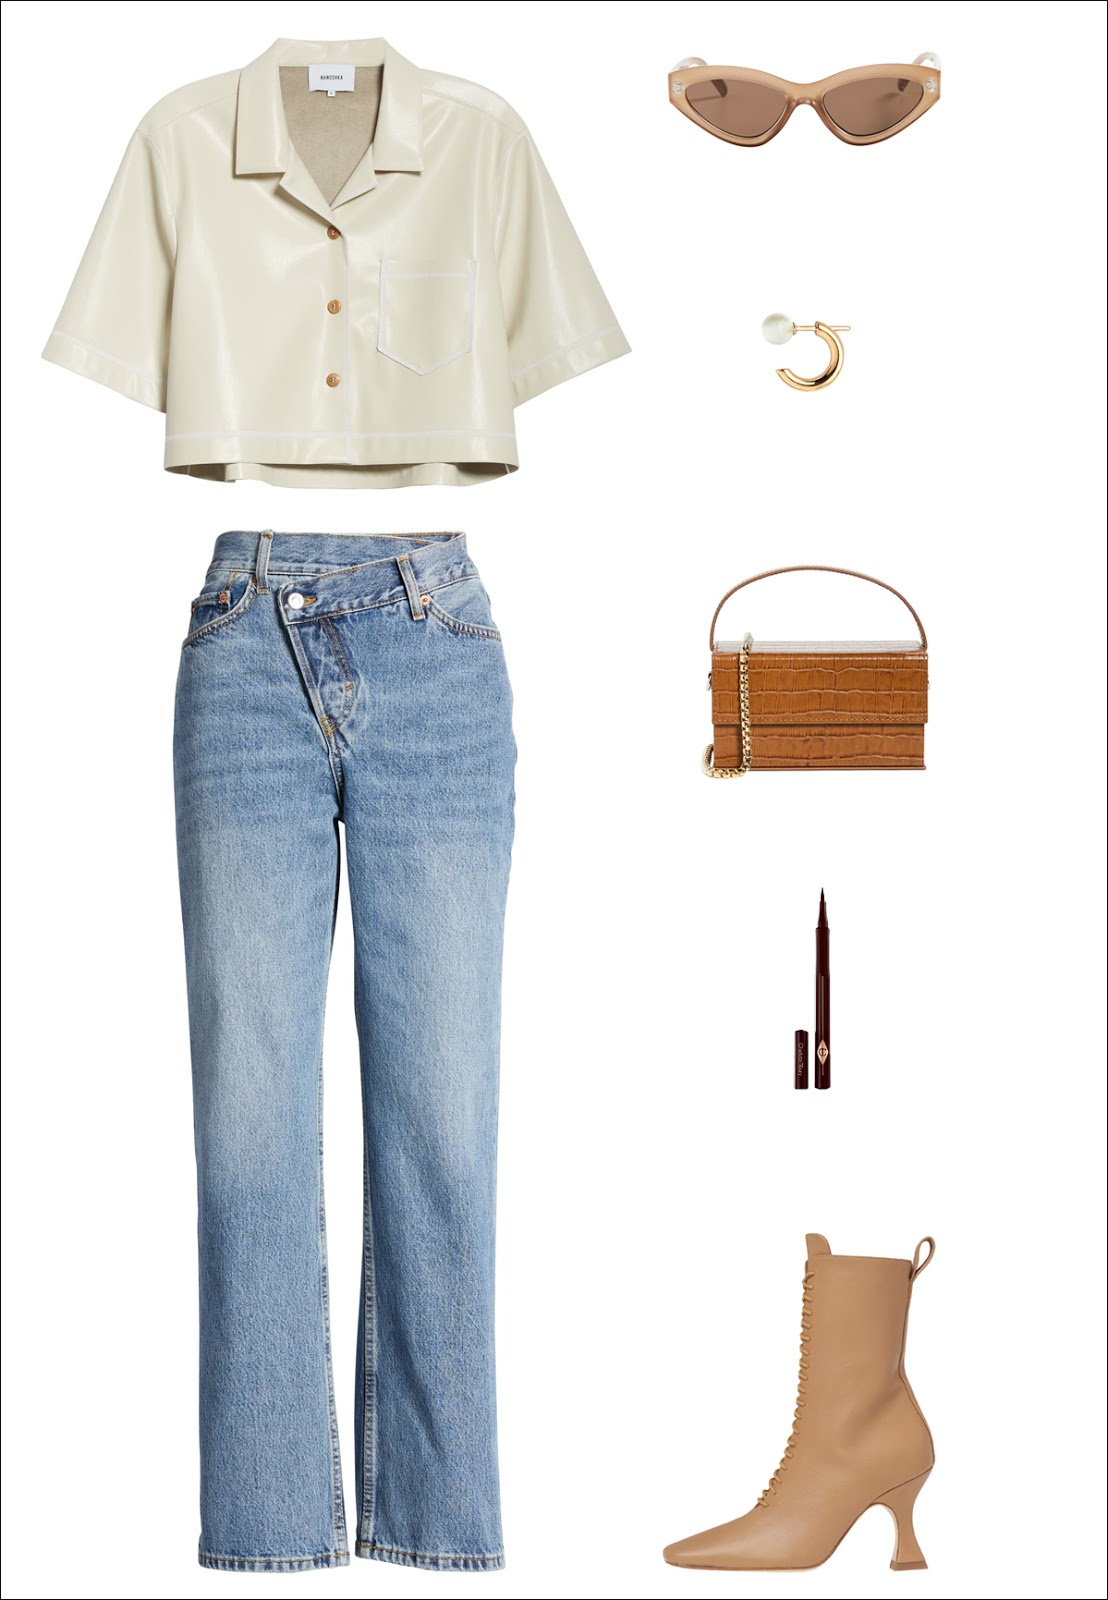 Neutral Spring Outfit Idea: white Nanushka cropped shirt, cat-eye sunglasses, huggie earrings, croc bag, twist wrap jeans, brown eyeliner, and Miista lace-up boots.